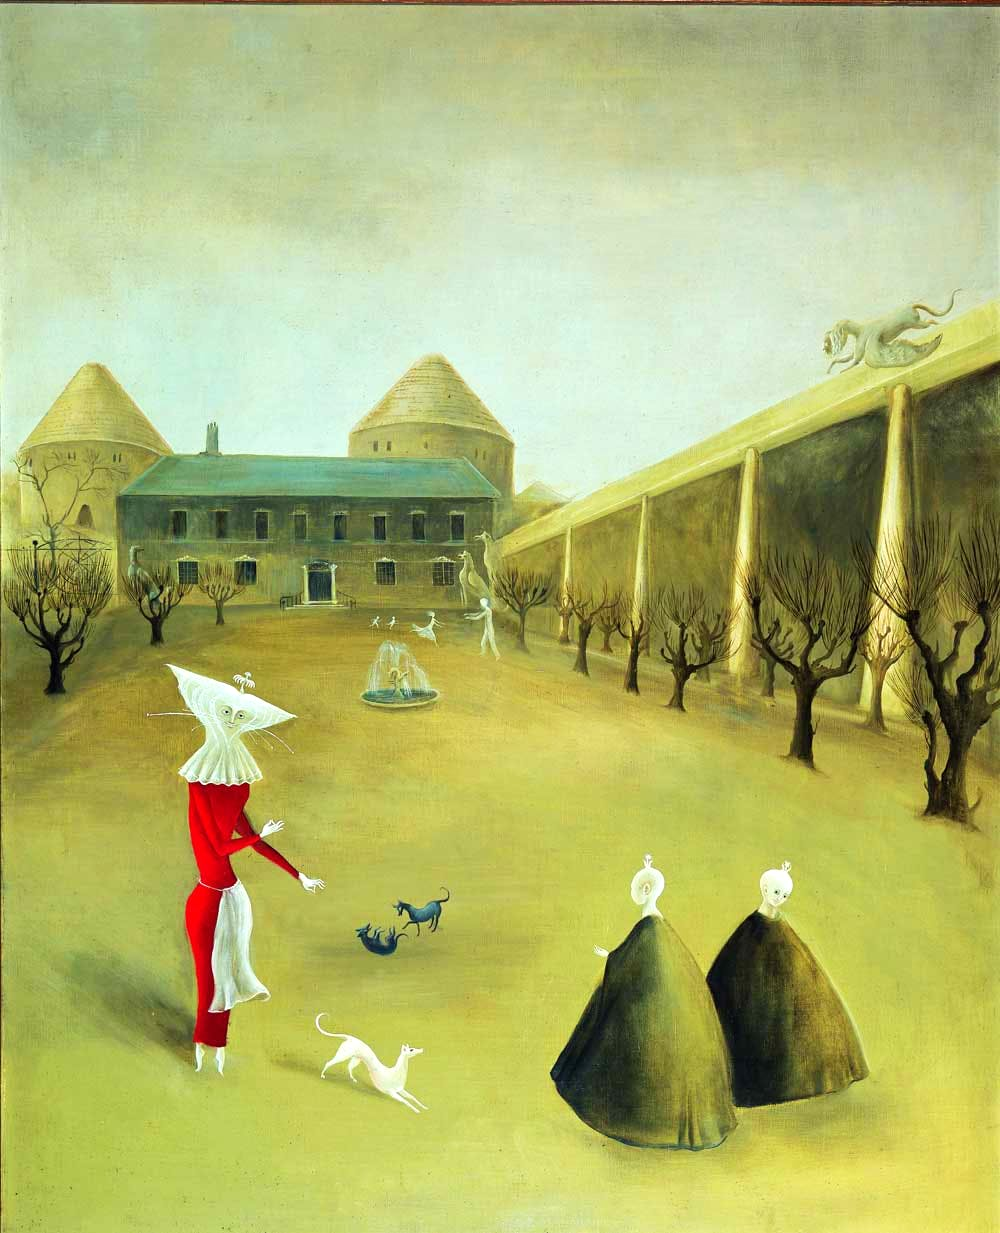 (c. 1950), Leonora Carrington